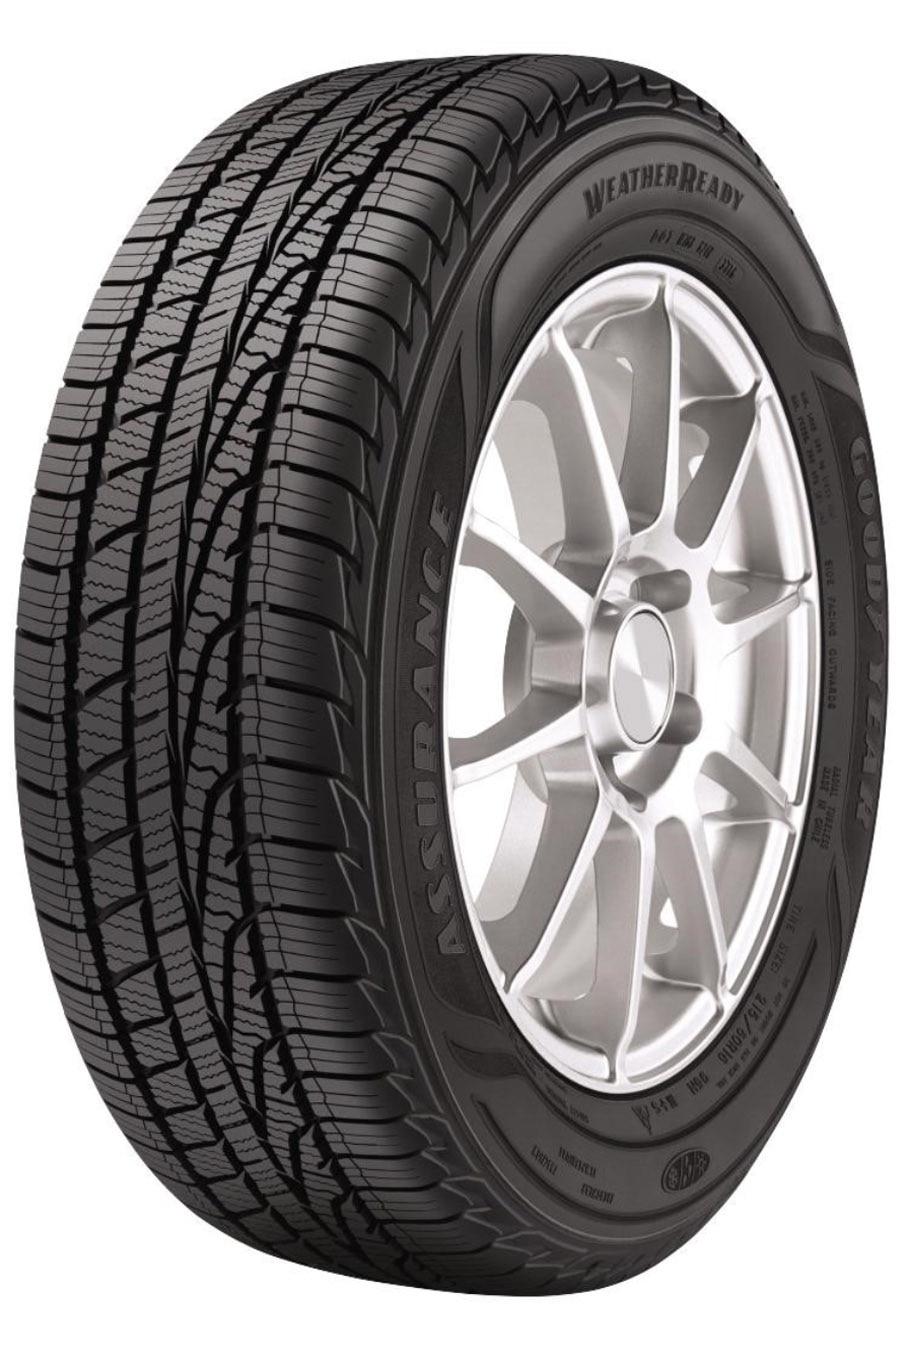 001 new tires goodyear all weather